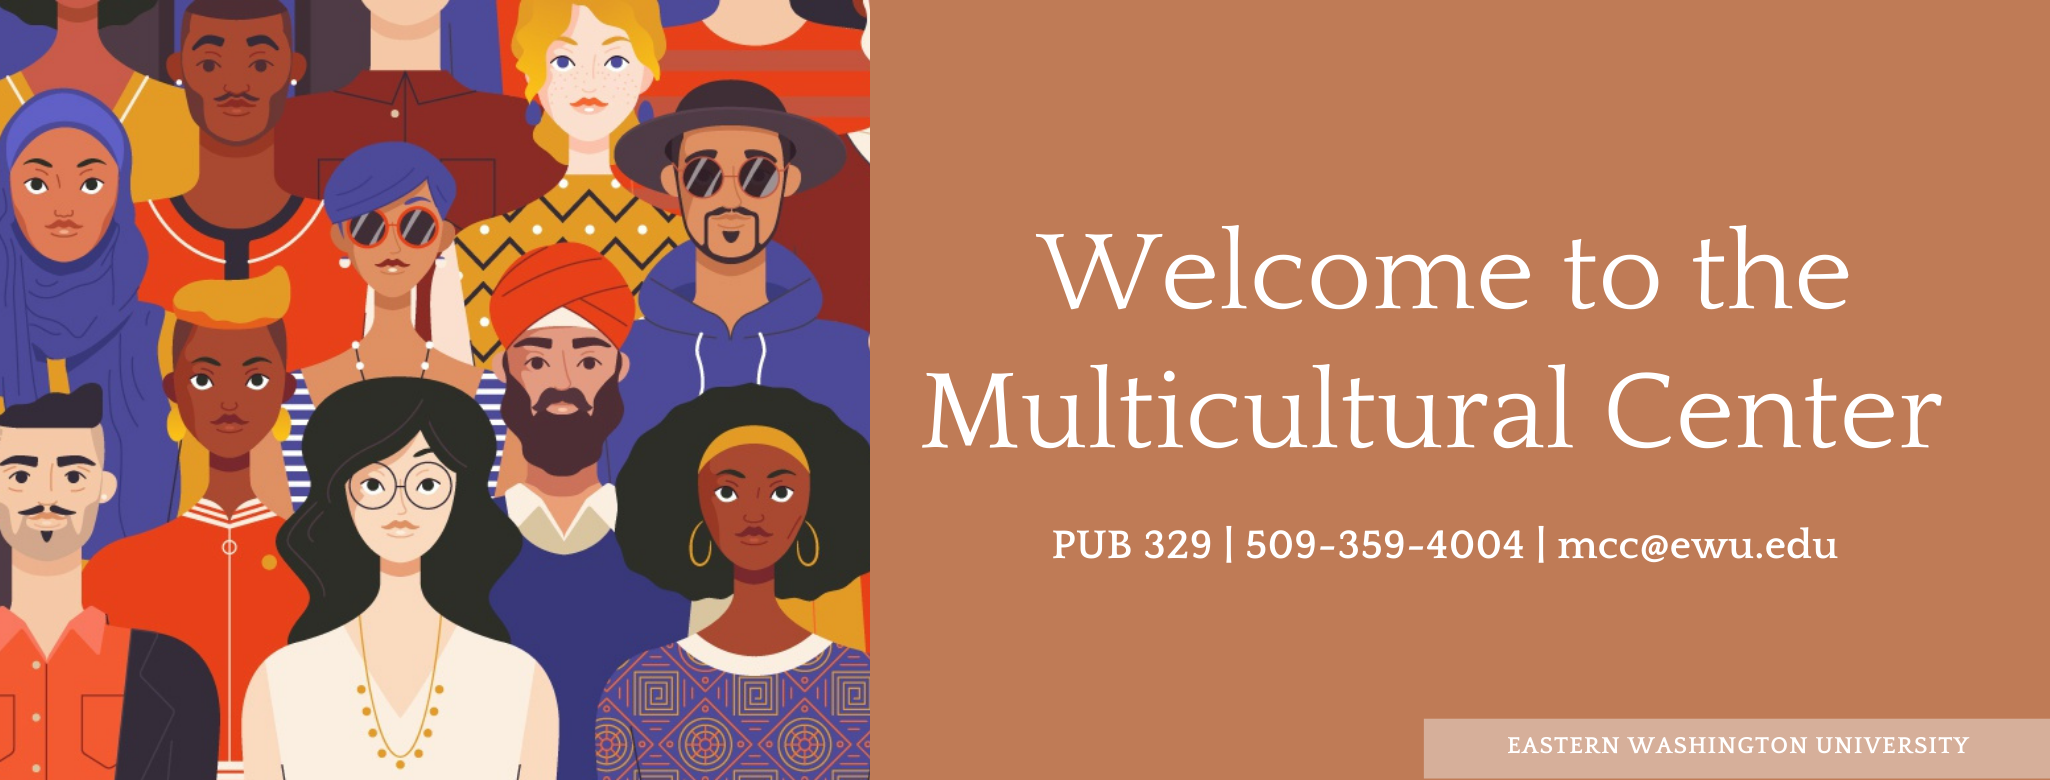 Welcome to the Multicultural Center